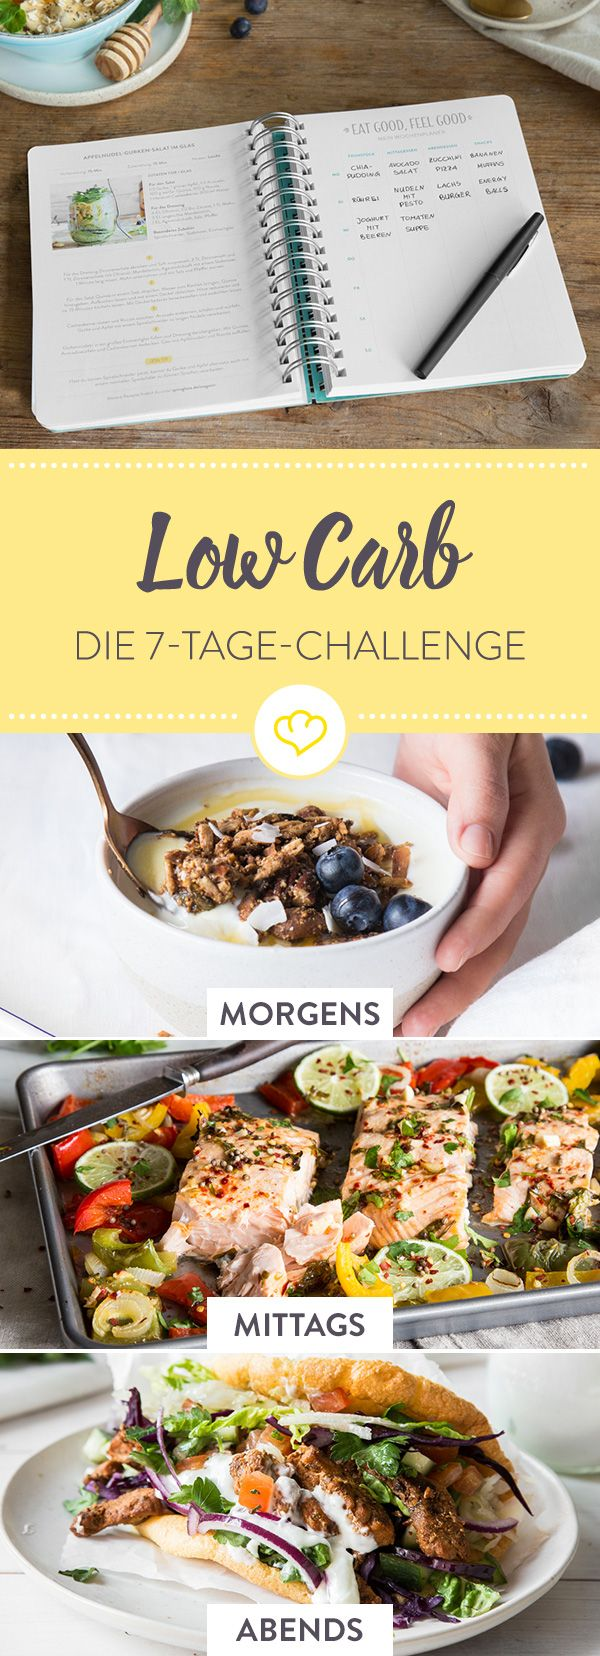 Photo of 7 Tage Low-Carb-Challenge: Kohlenhydrate einfach reduzieren